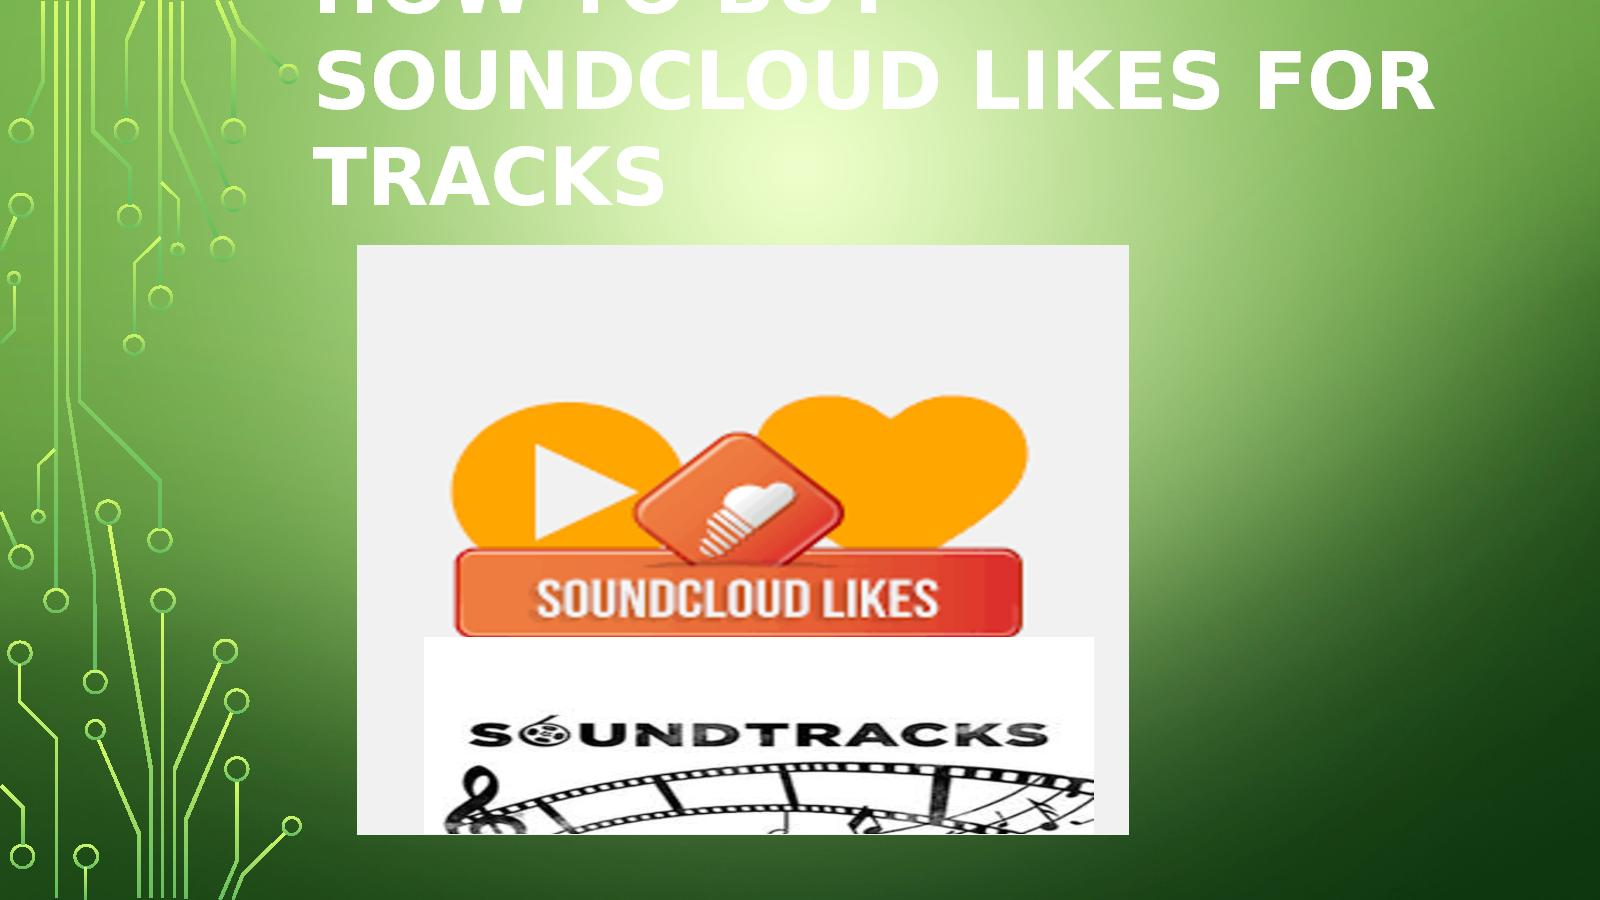 Calaméo - How To Buy SoundCloud Likes For Tracks